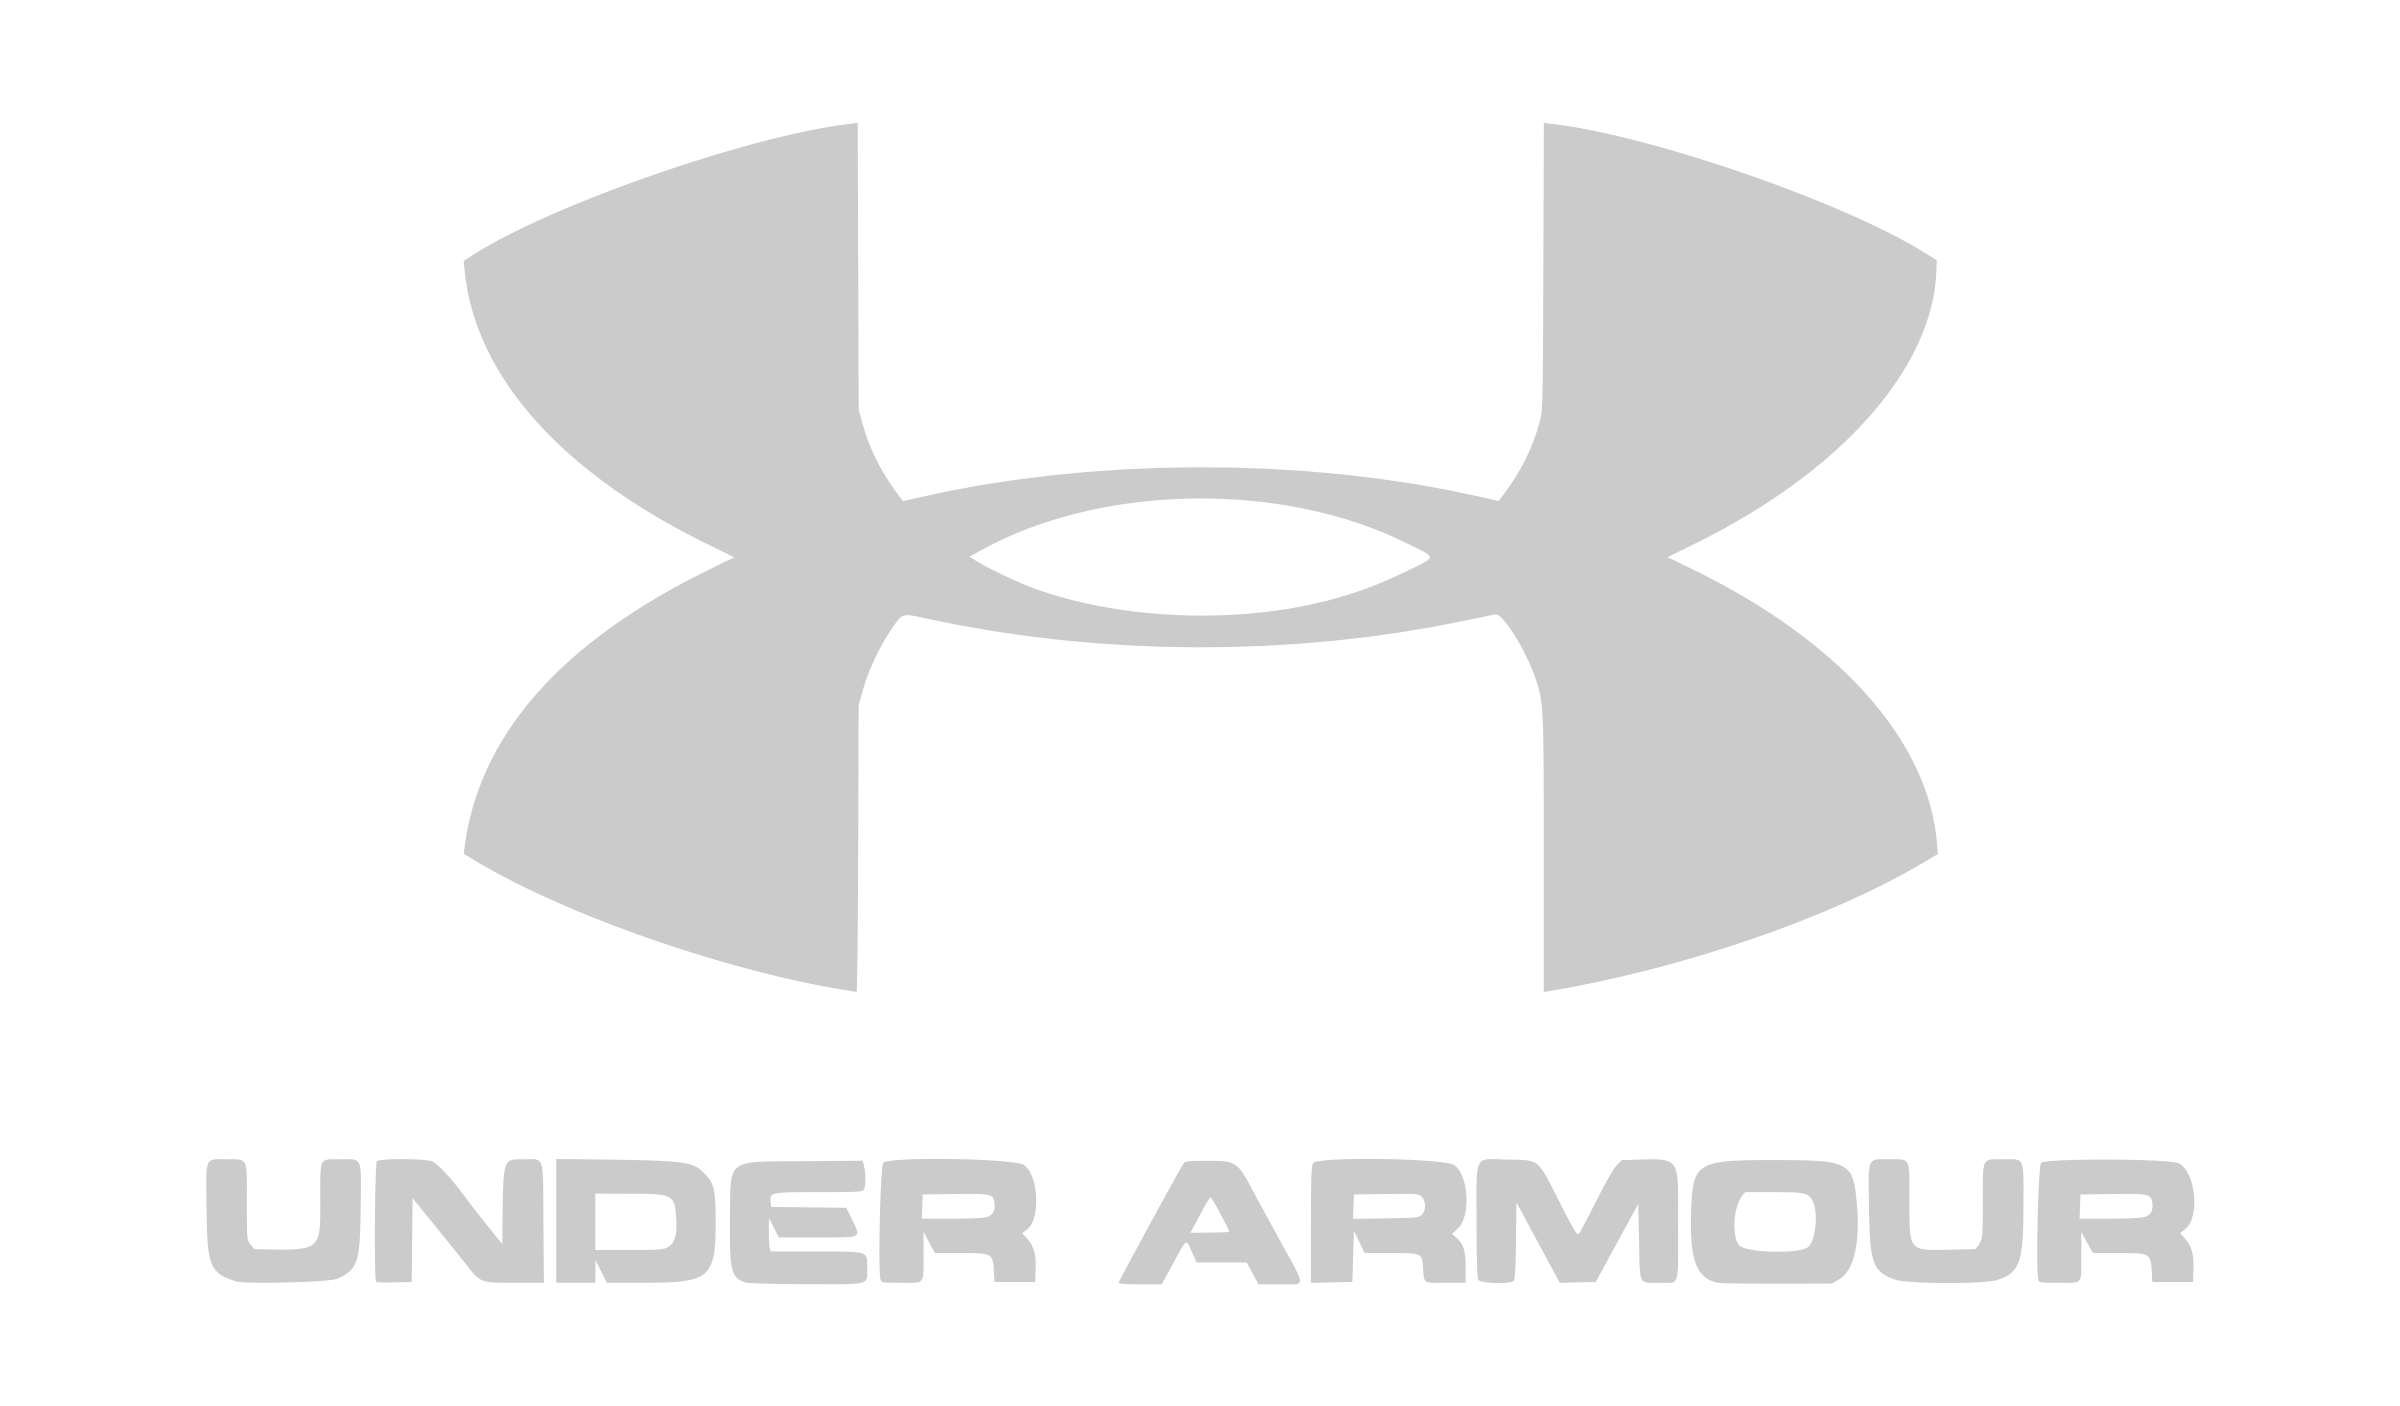 Under_armour_logo - grey.png